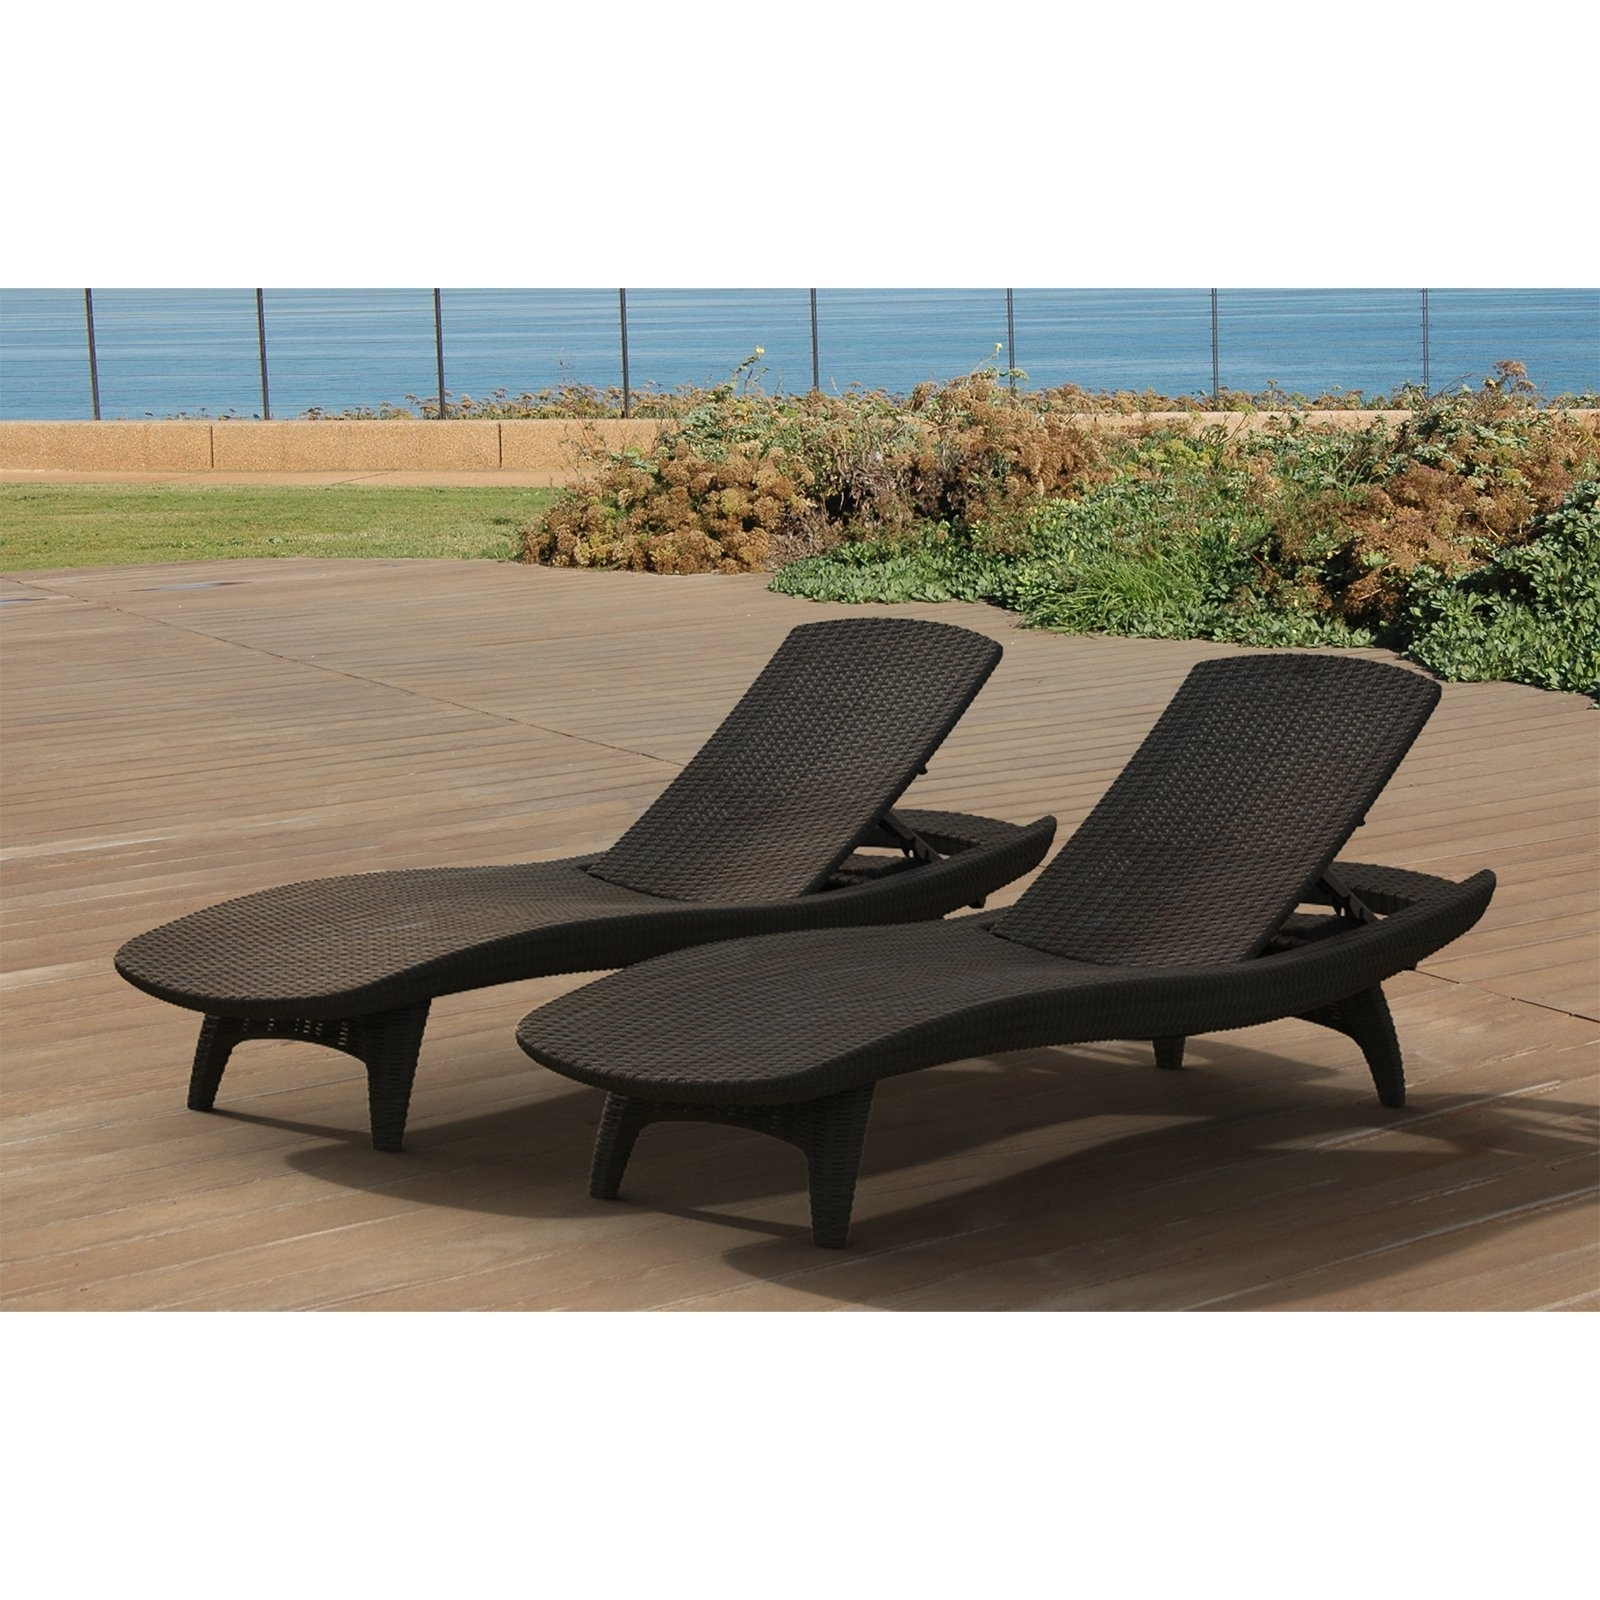 Keter Chaise Lounges with Popular Keter Outdoor Chaise Lounge - Set Of 2